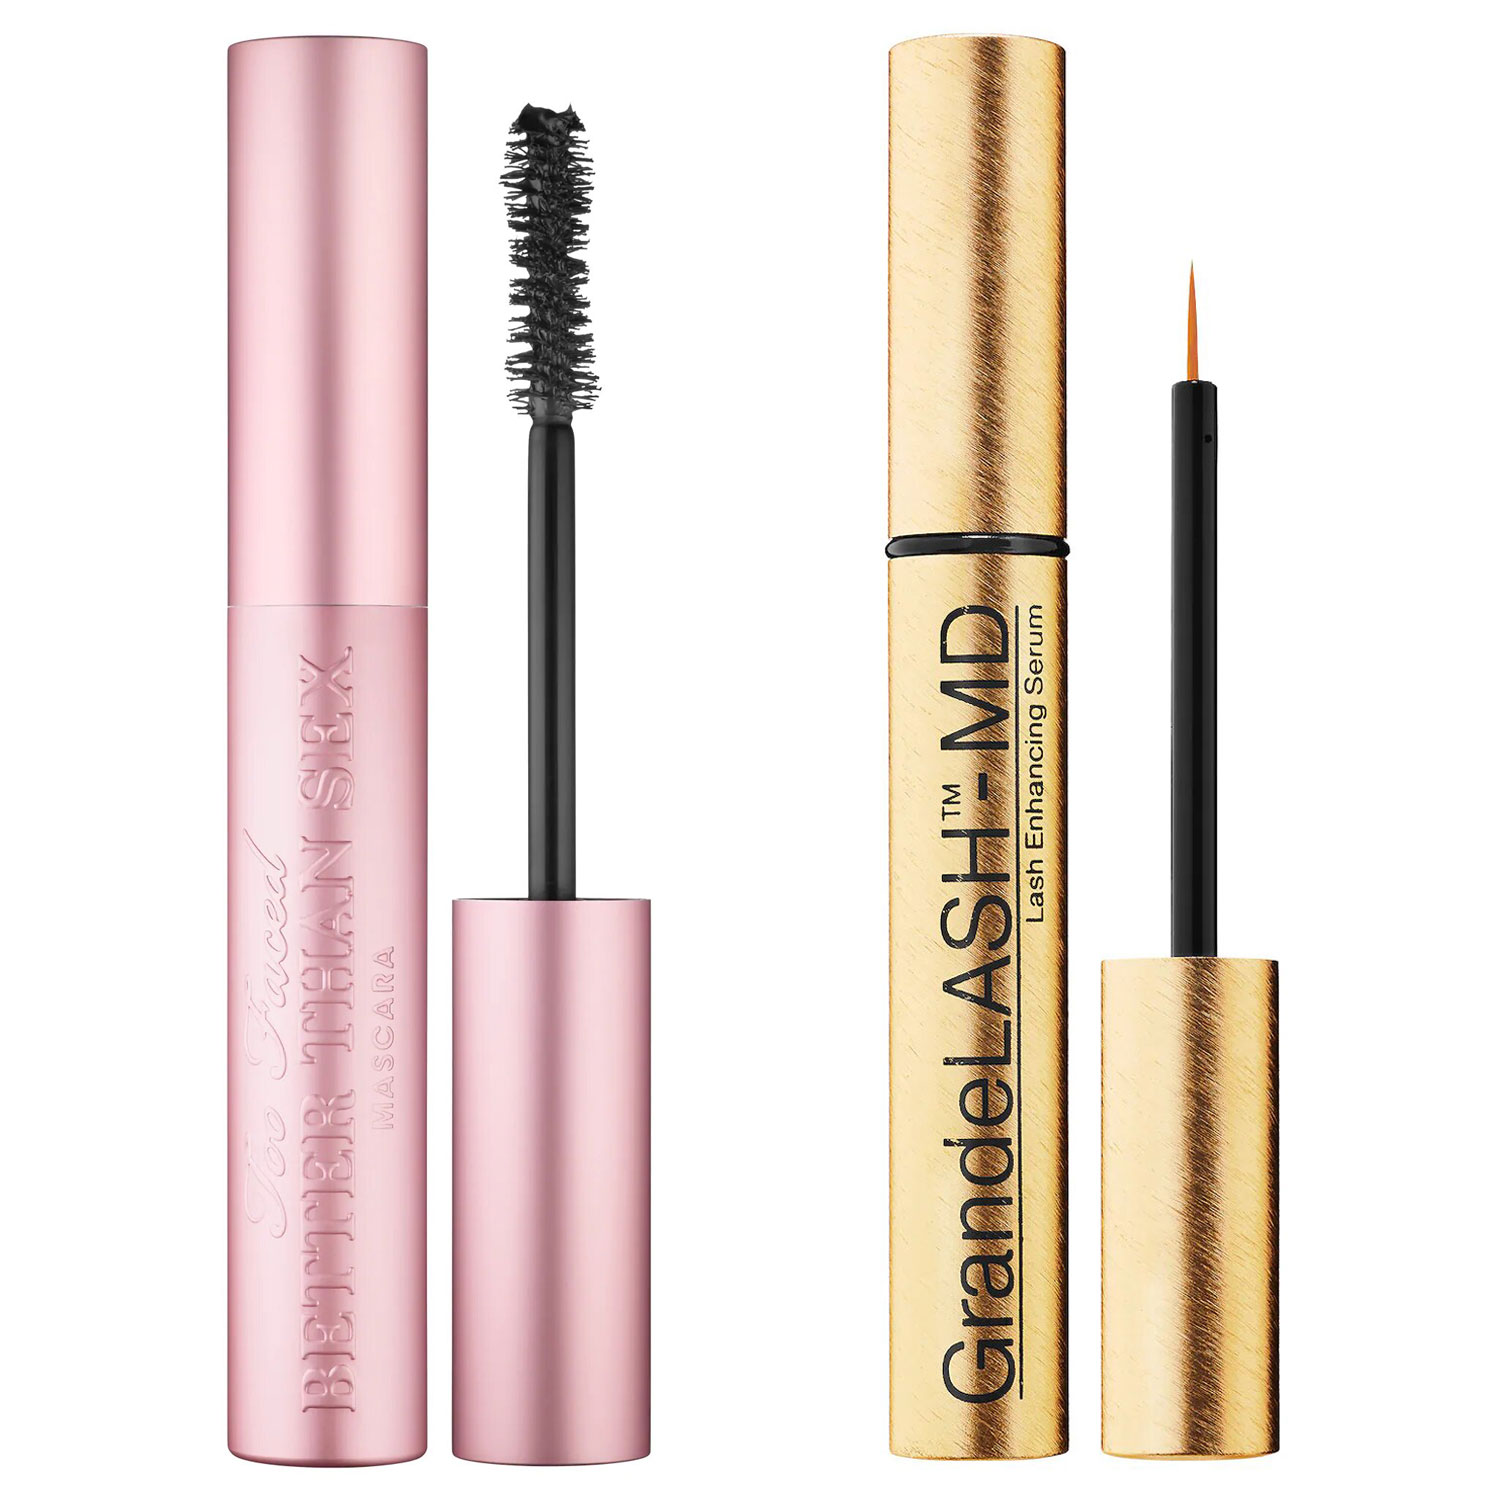 TOO FACED Better Than Sex Mascara and GRANDE COSMETICS